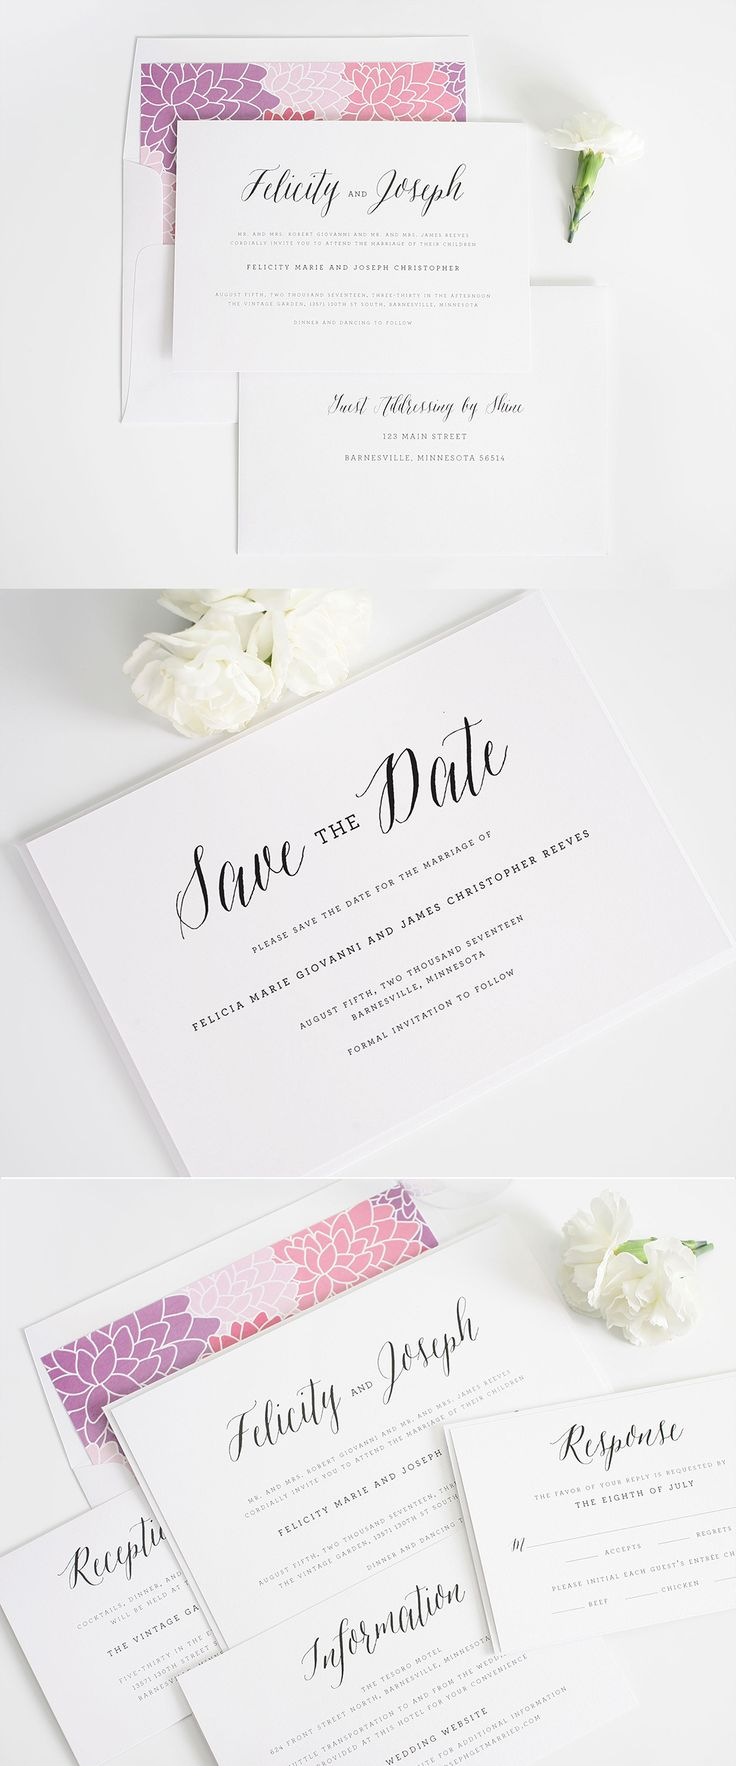 Rustic romance wedding invitations http://www.shineweddinginvitations.com/wedding-invitations/rustic-romance-wedding-invitations